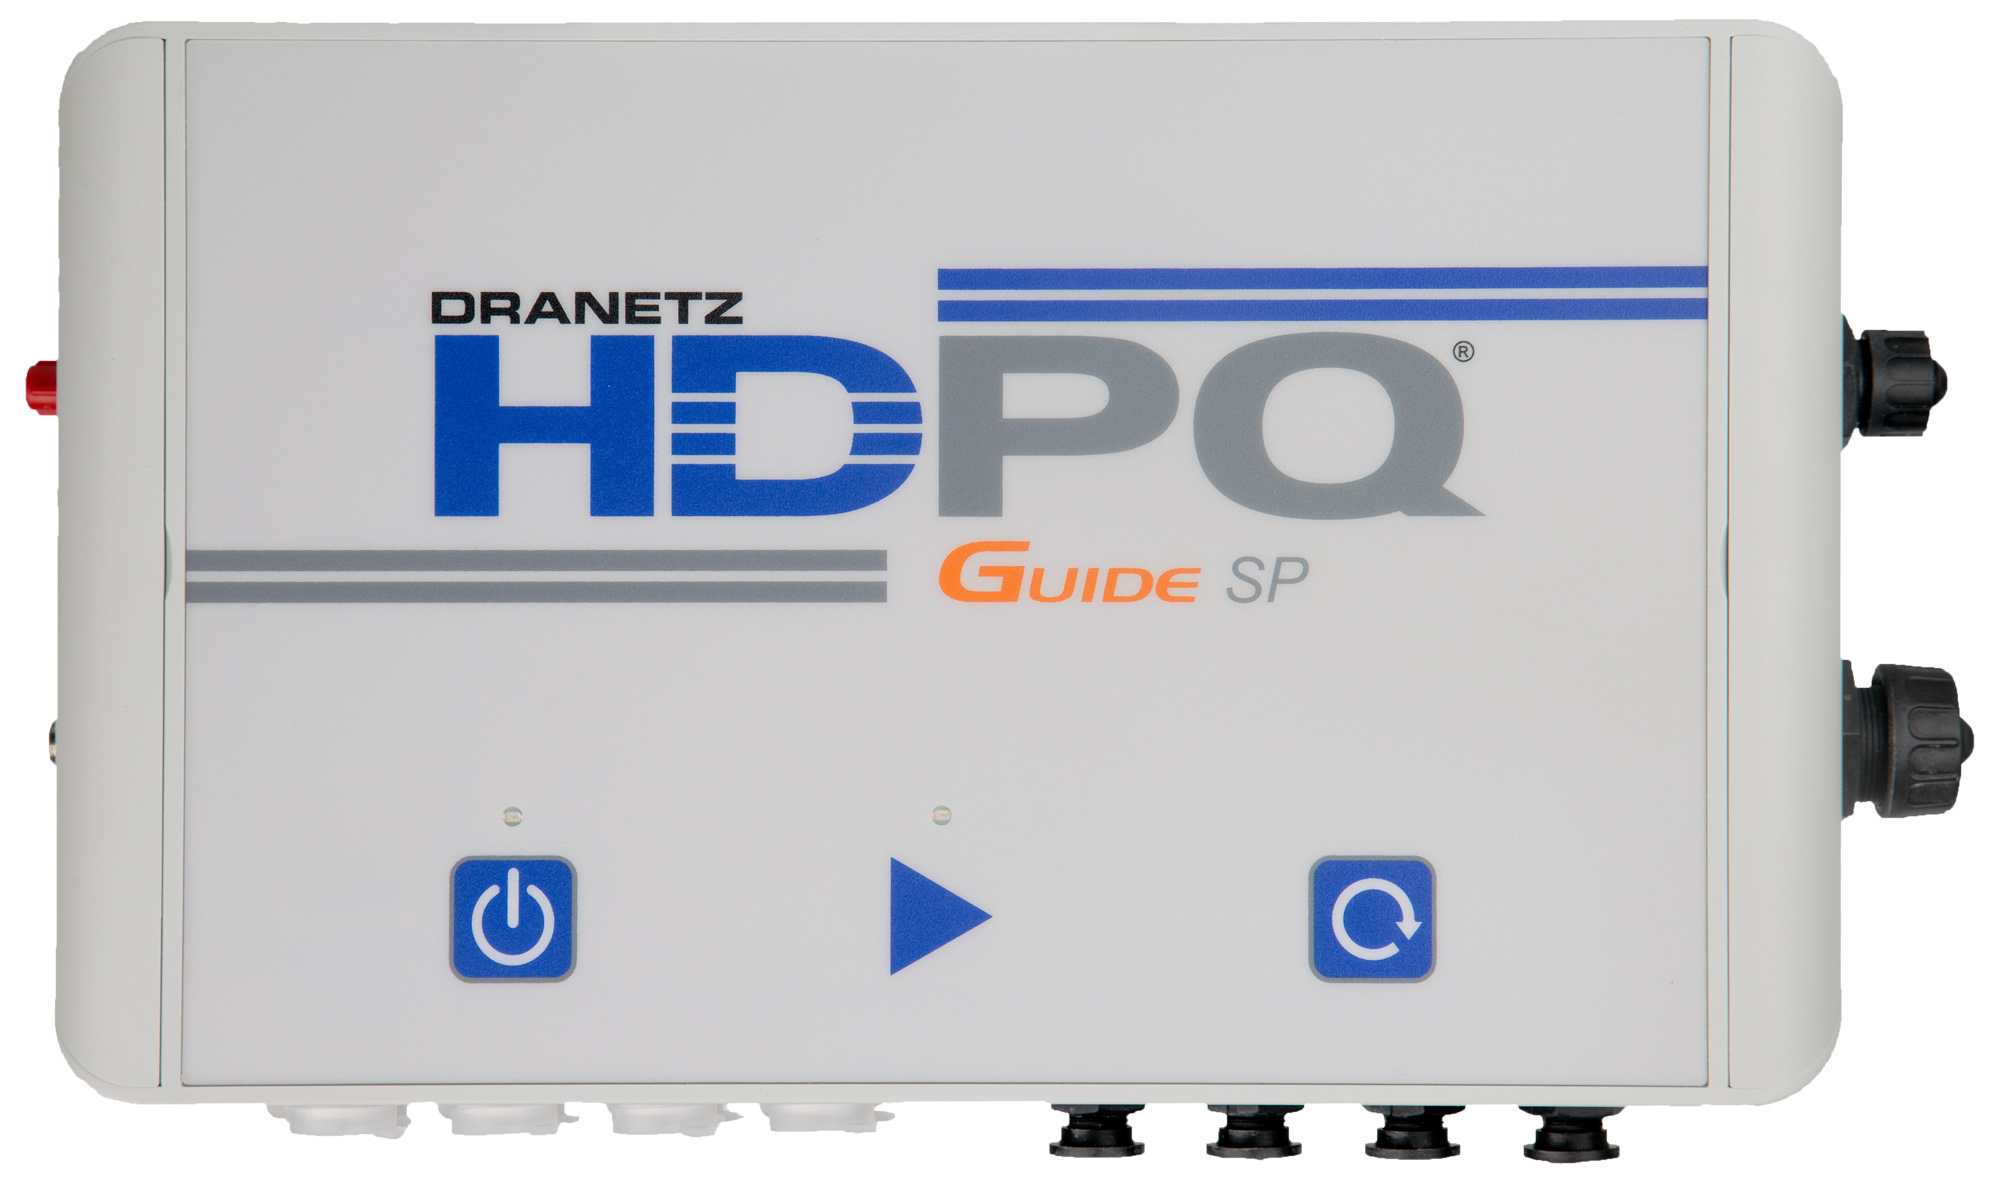 The New Dranetz HDPQ SP - IP65 Protection | Dranetz